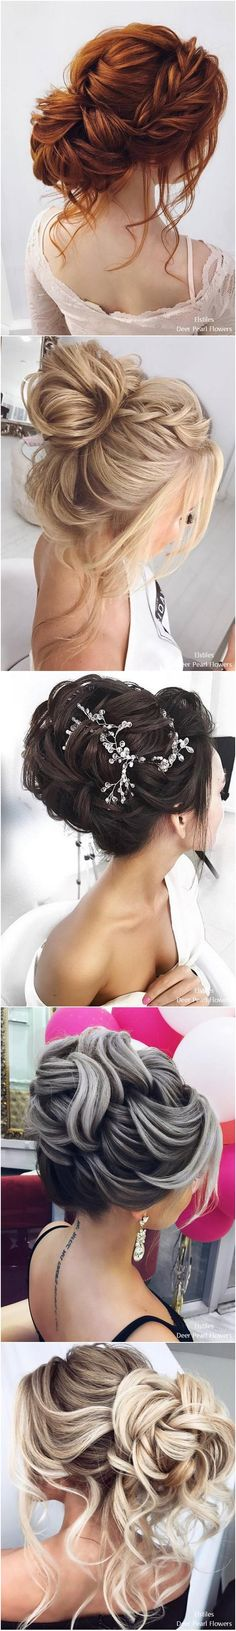 bridal updos. bridal hair. hairstyles. braids. #bridalhair #hairstyle #bridalupdo